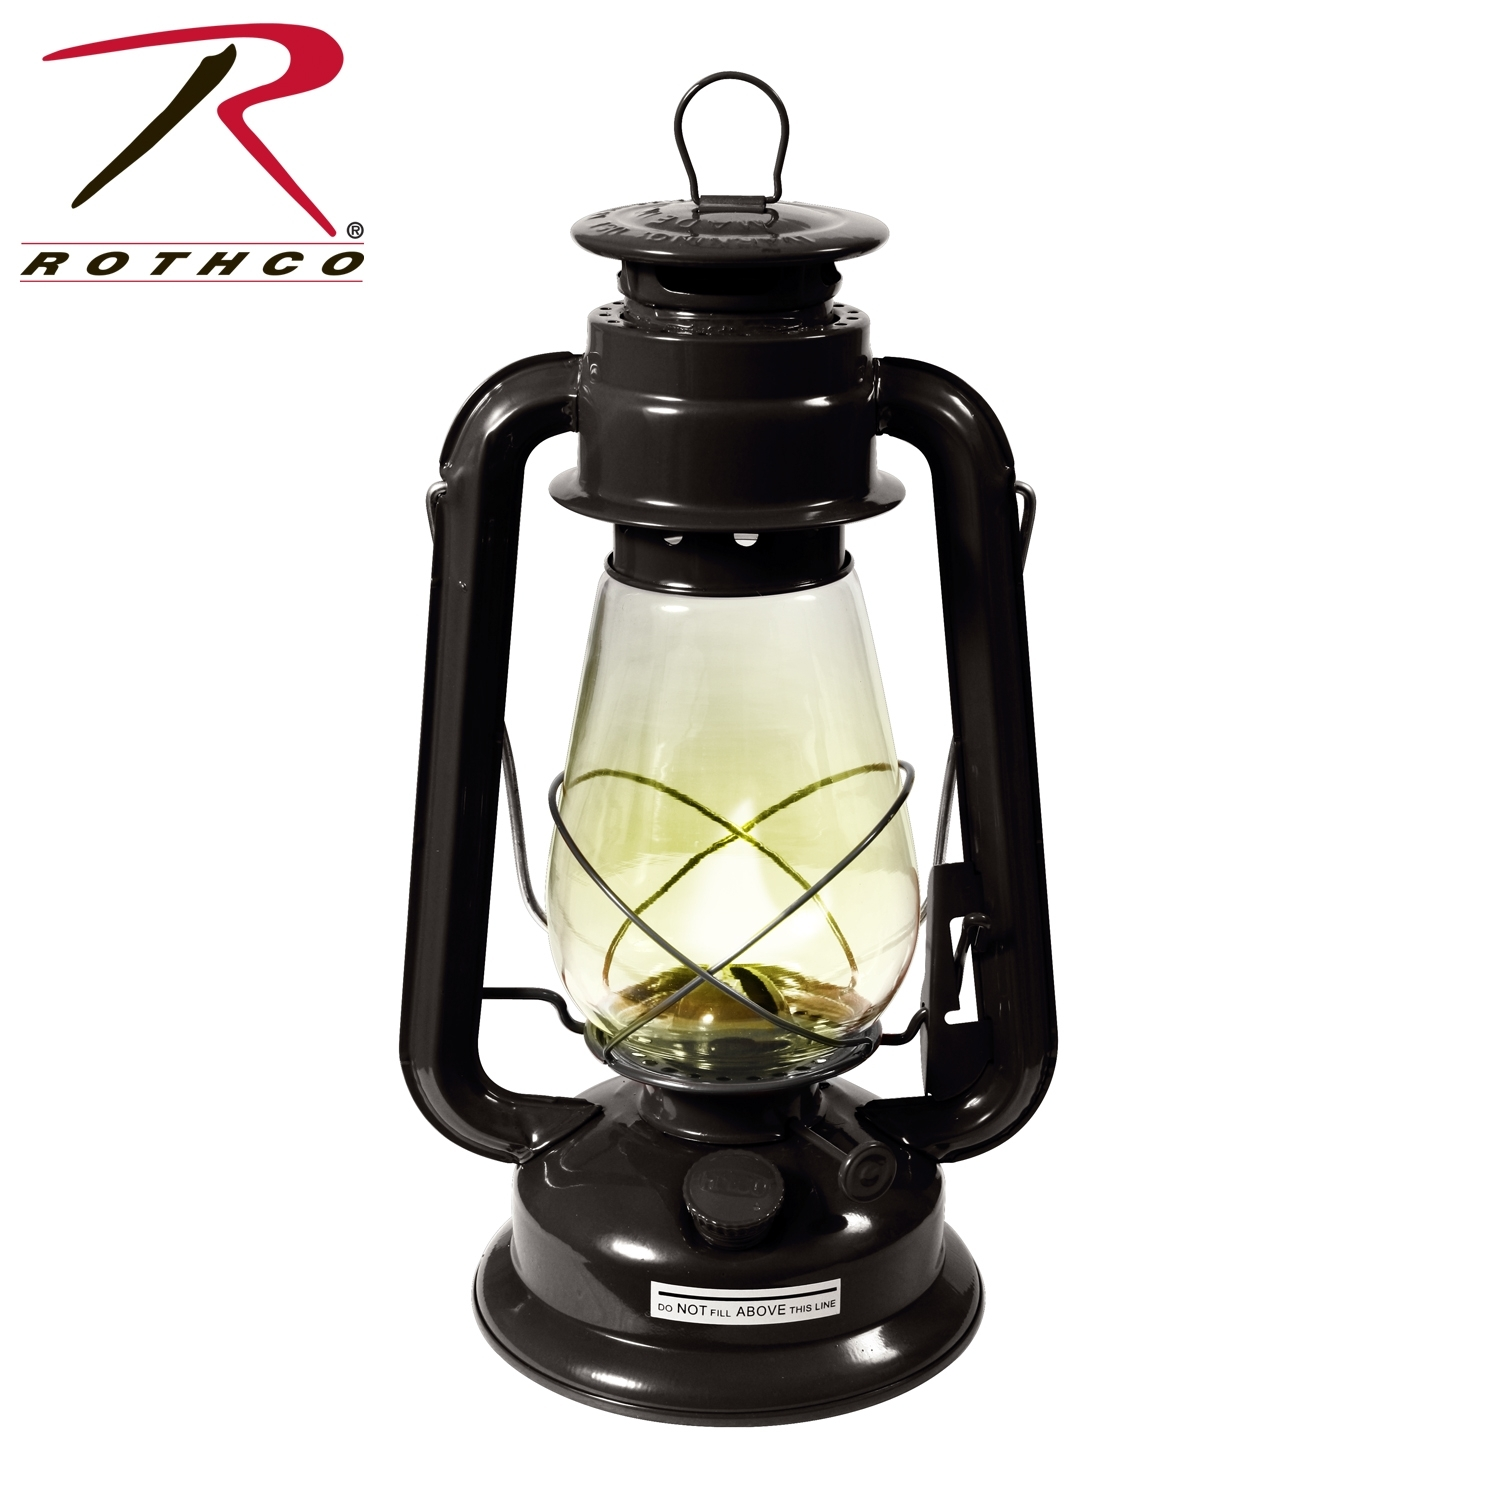 Rothco Kerosene Lantern intended for Outdoor Kerosene Lanterns (Image 17 of 20)